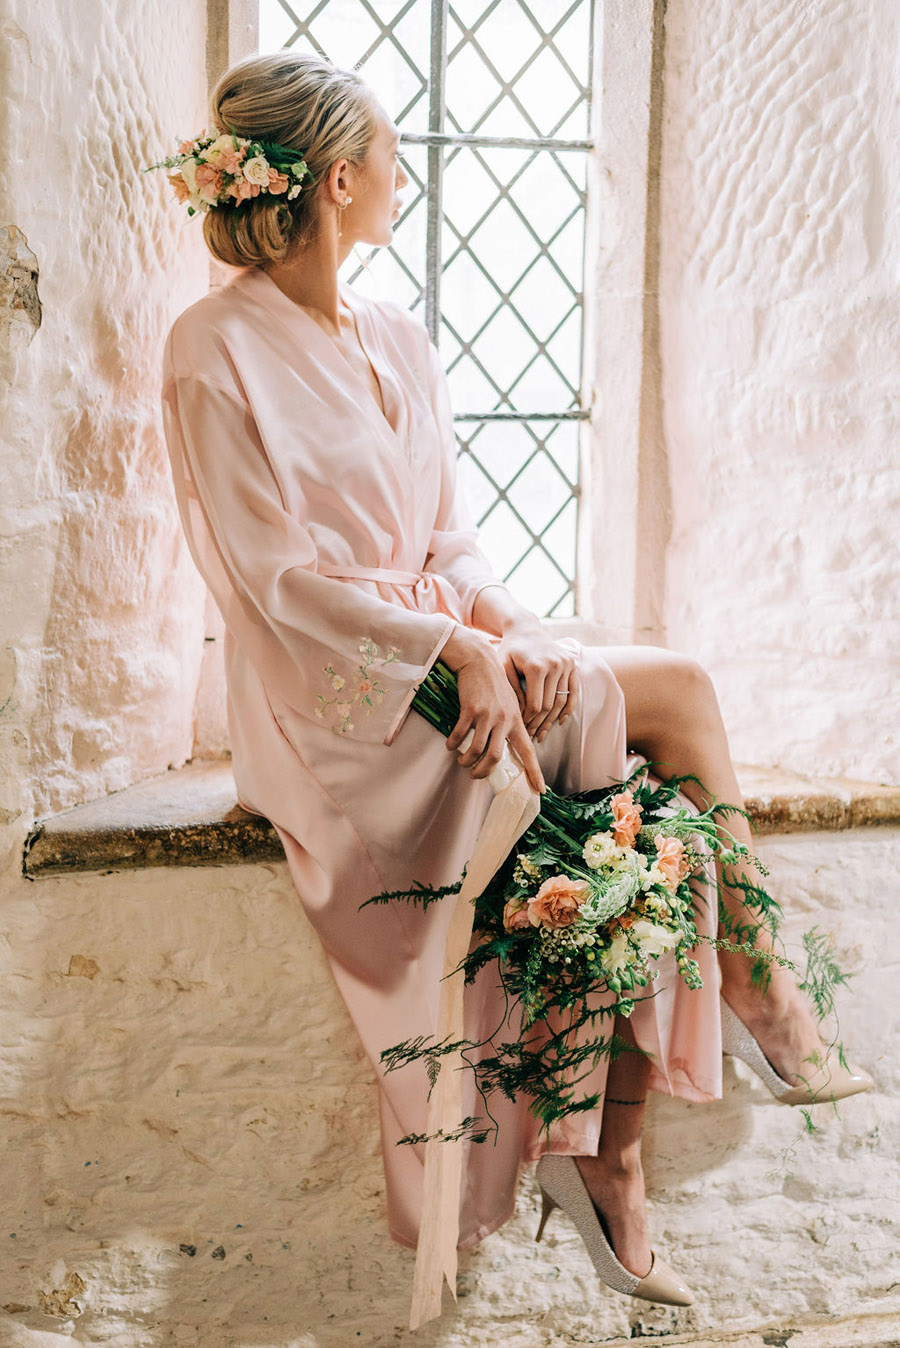 coral and neutral colour palette for a stunning wedding look with Corky and Prince, image credit Rachel Jane Photography (25)